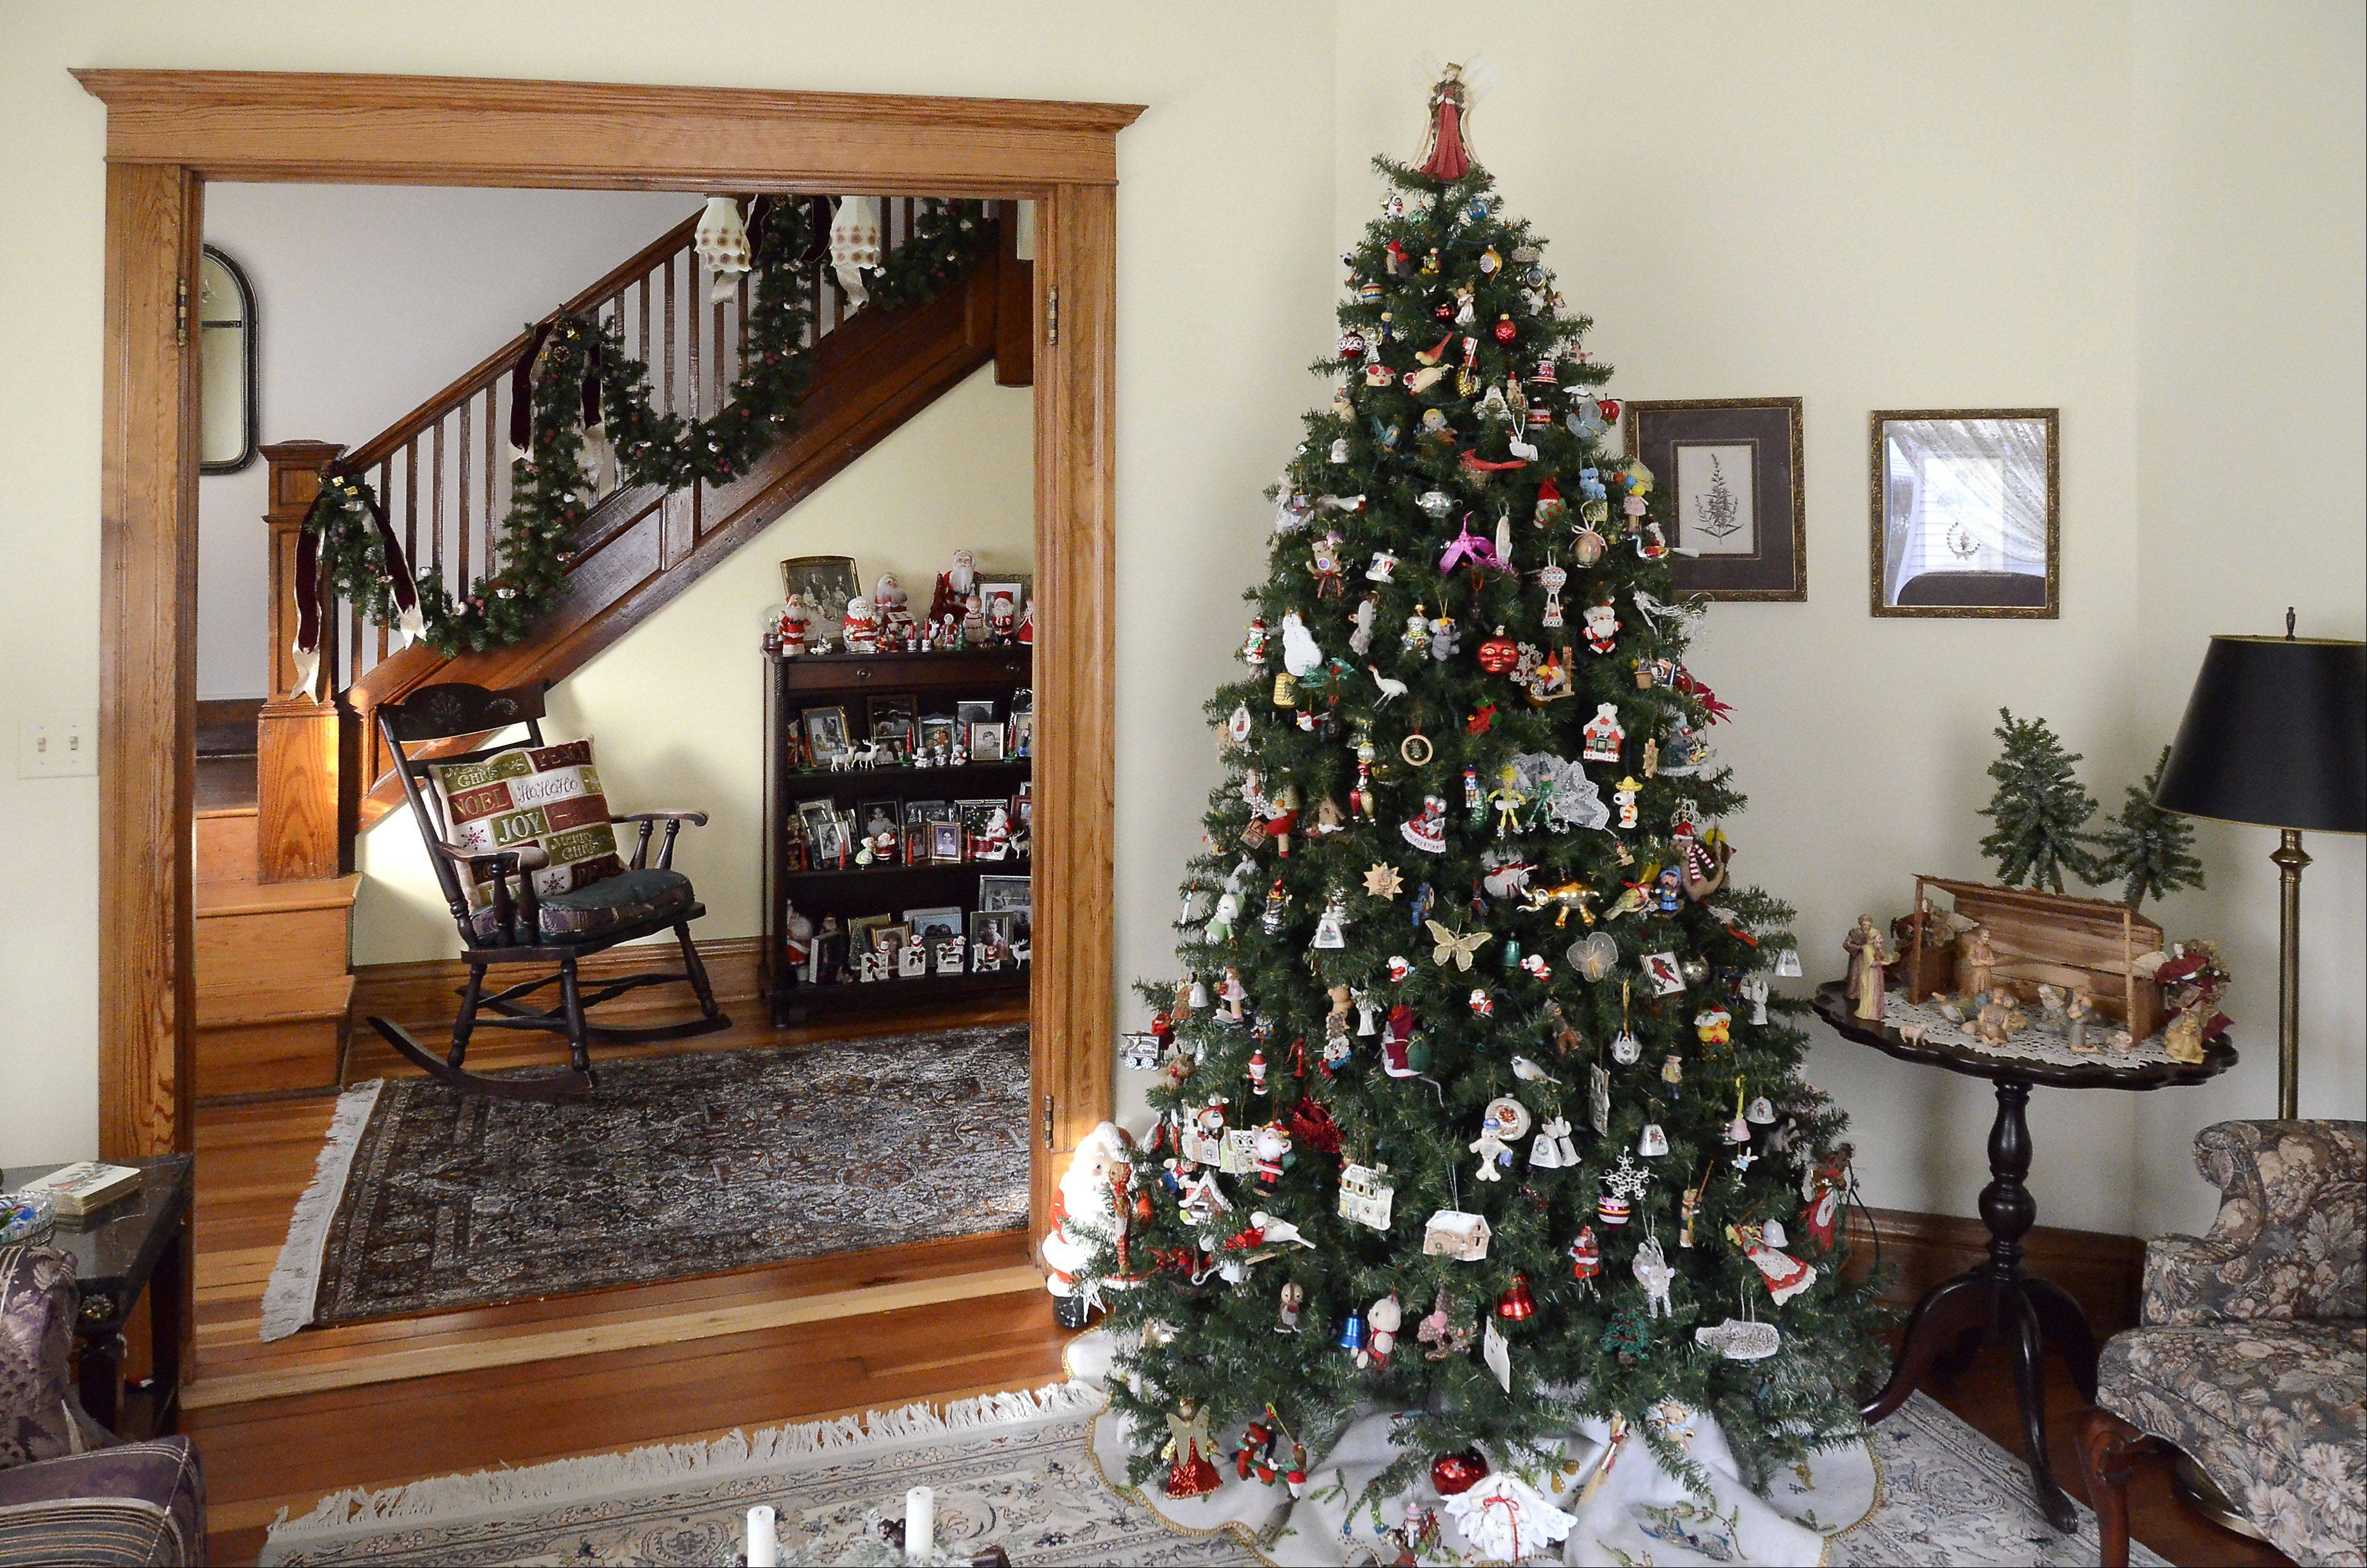 The living room of the Waters family home is decorated for the holidays and the annual housewalk.